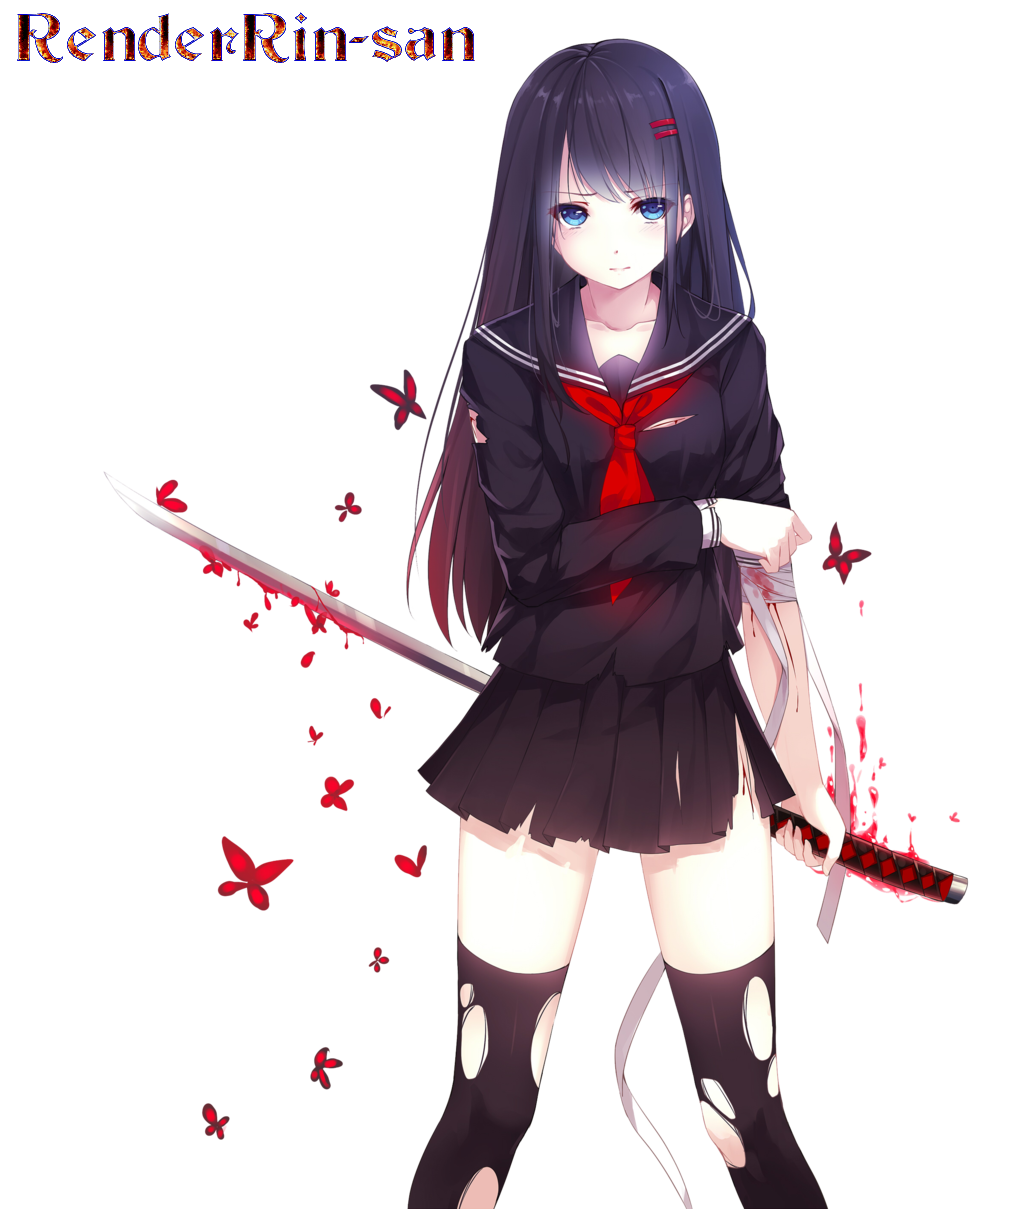 Anime Girl With Bloody Sword by RenderRin-san on DeviantArt